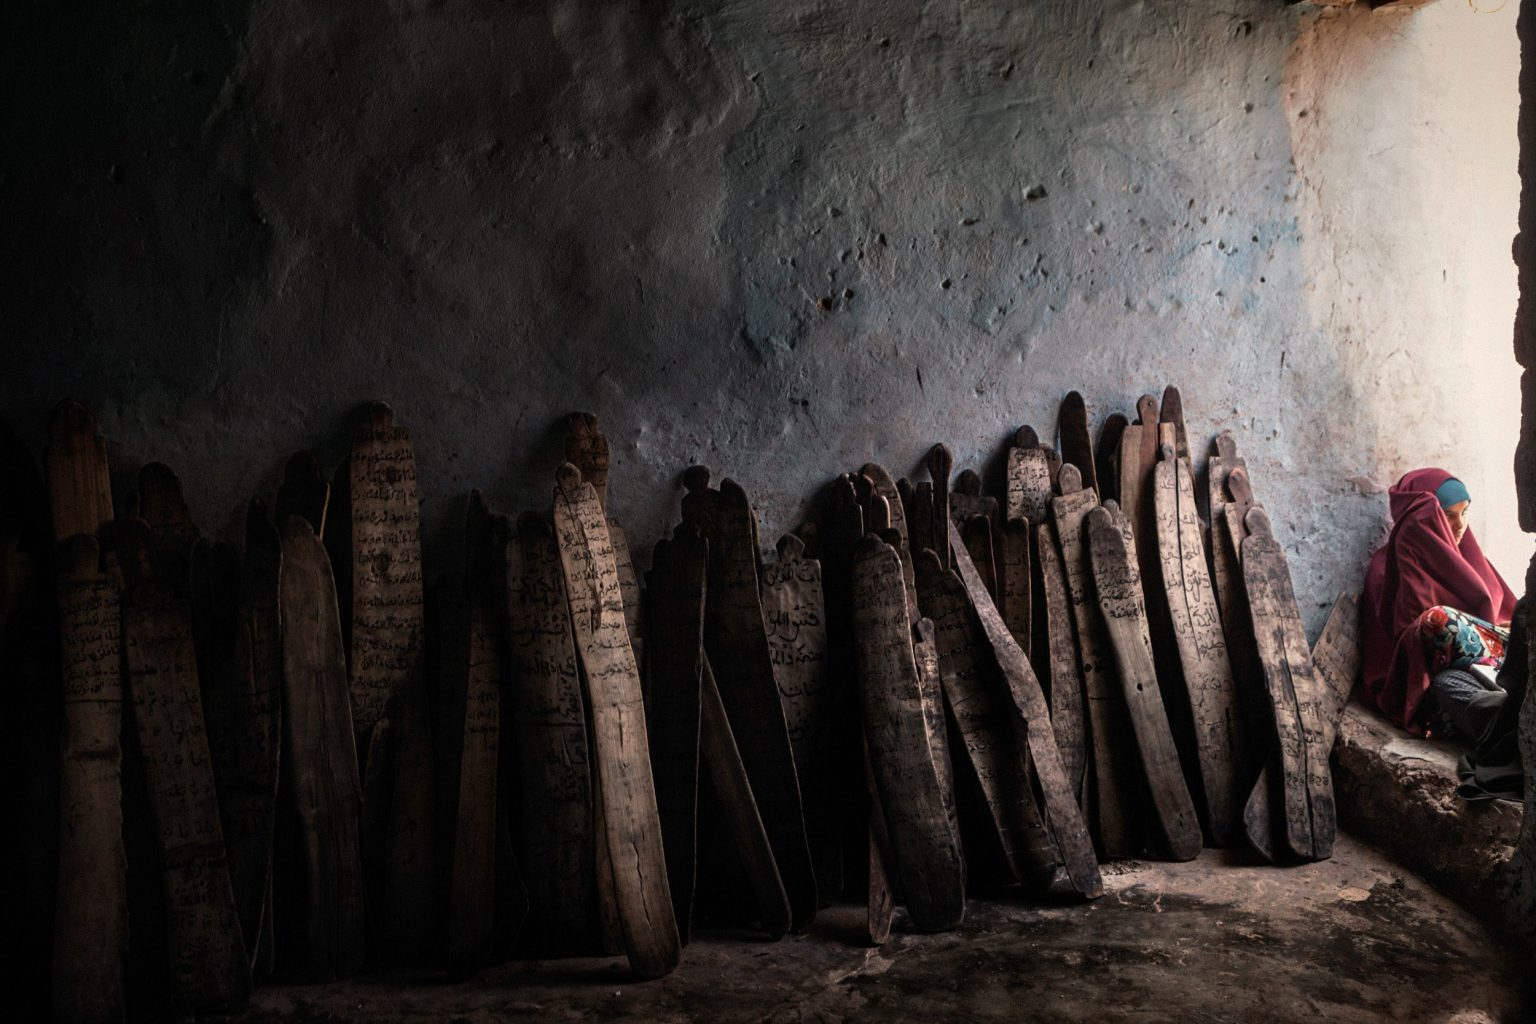 frica, Somalia, Mogadishu. 20/10/2015. Loox (traditional Somali Koranic tables of wood) by the wall in a Madrasas located in Onat refugee camp in the district of Abdi Asis. Over 700 families live in Onat refugee camp in the district of Abdi Asis. Some IDPs have been living in this tent city for more than 20 years. Living conditions are precarious, and most of the displaced have nowhere to go back to, having lost everything during the lengthy conflict. In the Madrasas of Mogadishu, Koran teachers impart the pillars of Islam to the new generations. After years of heretical dictatorship, everything must be reconstructed from the foundations, including religious faith.